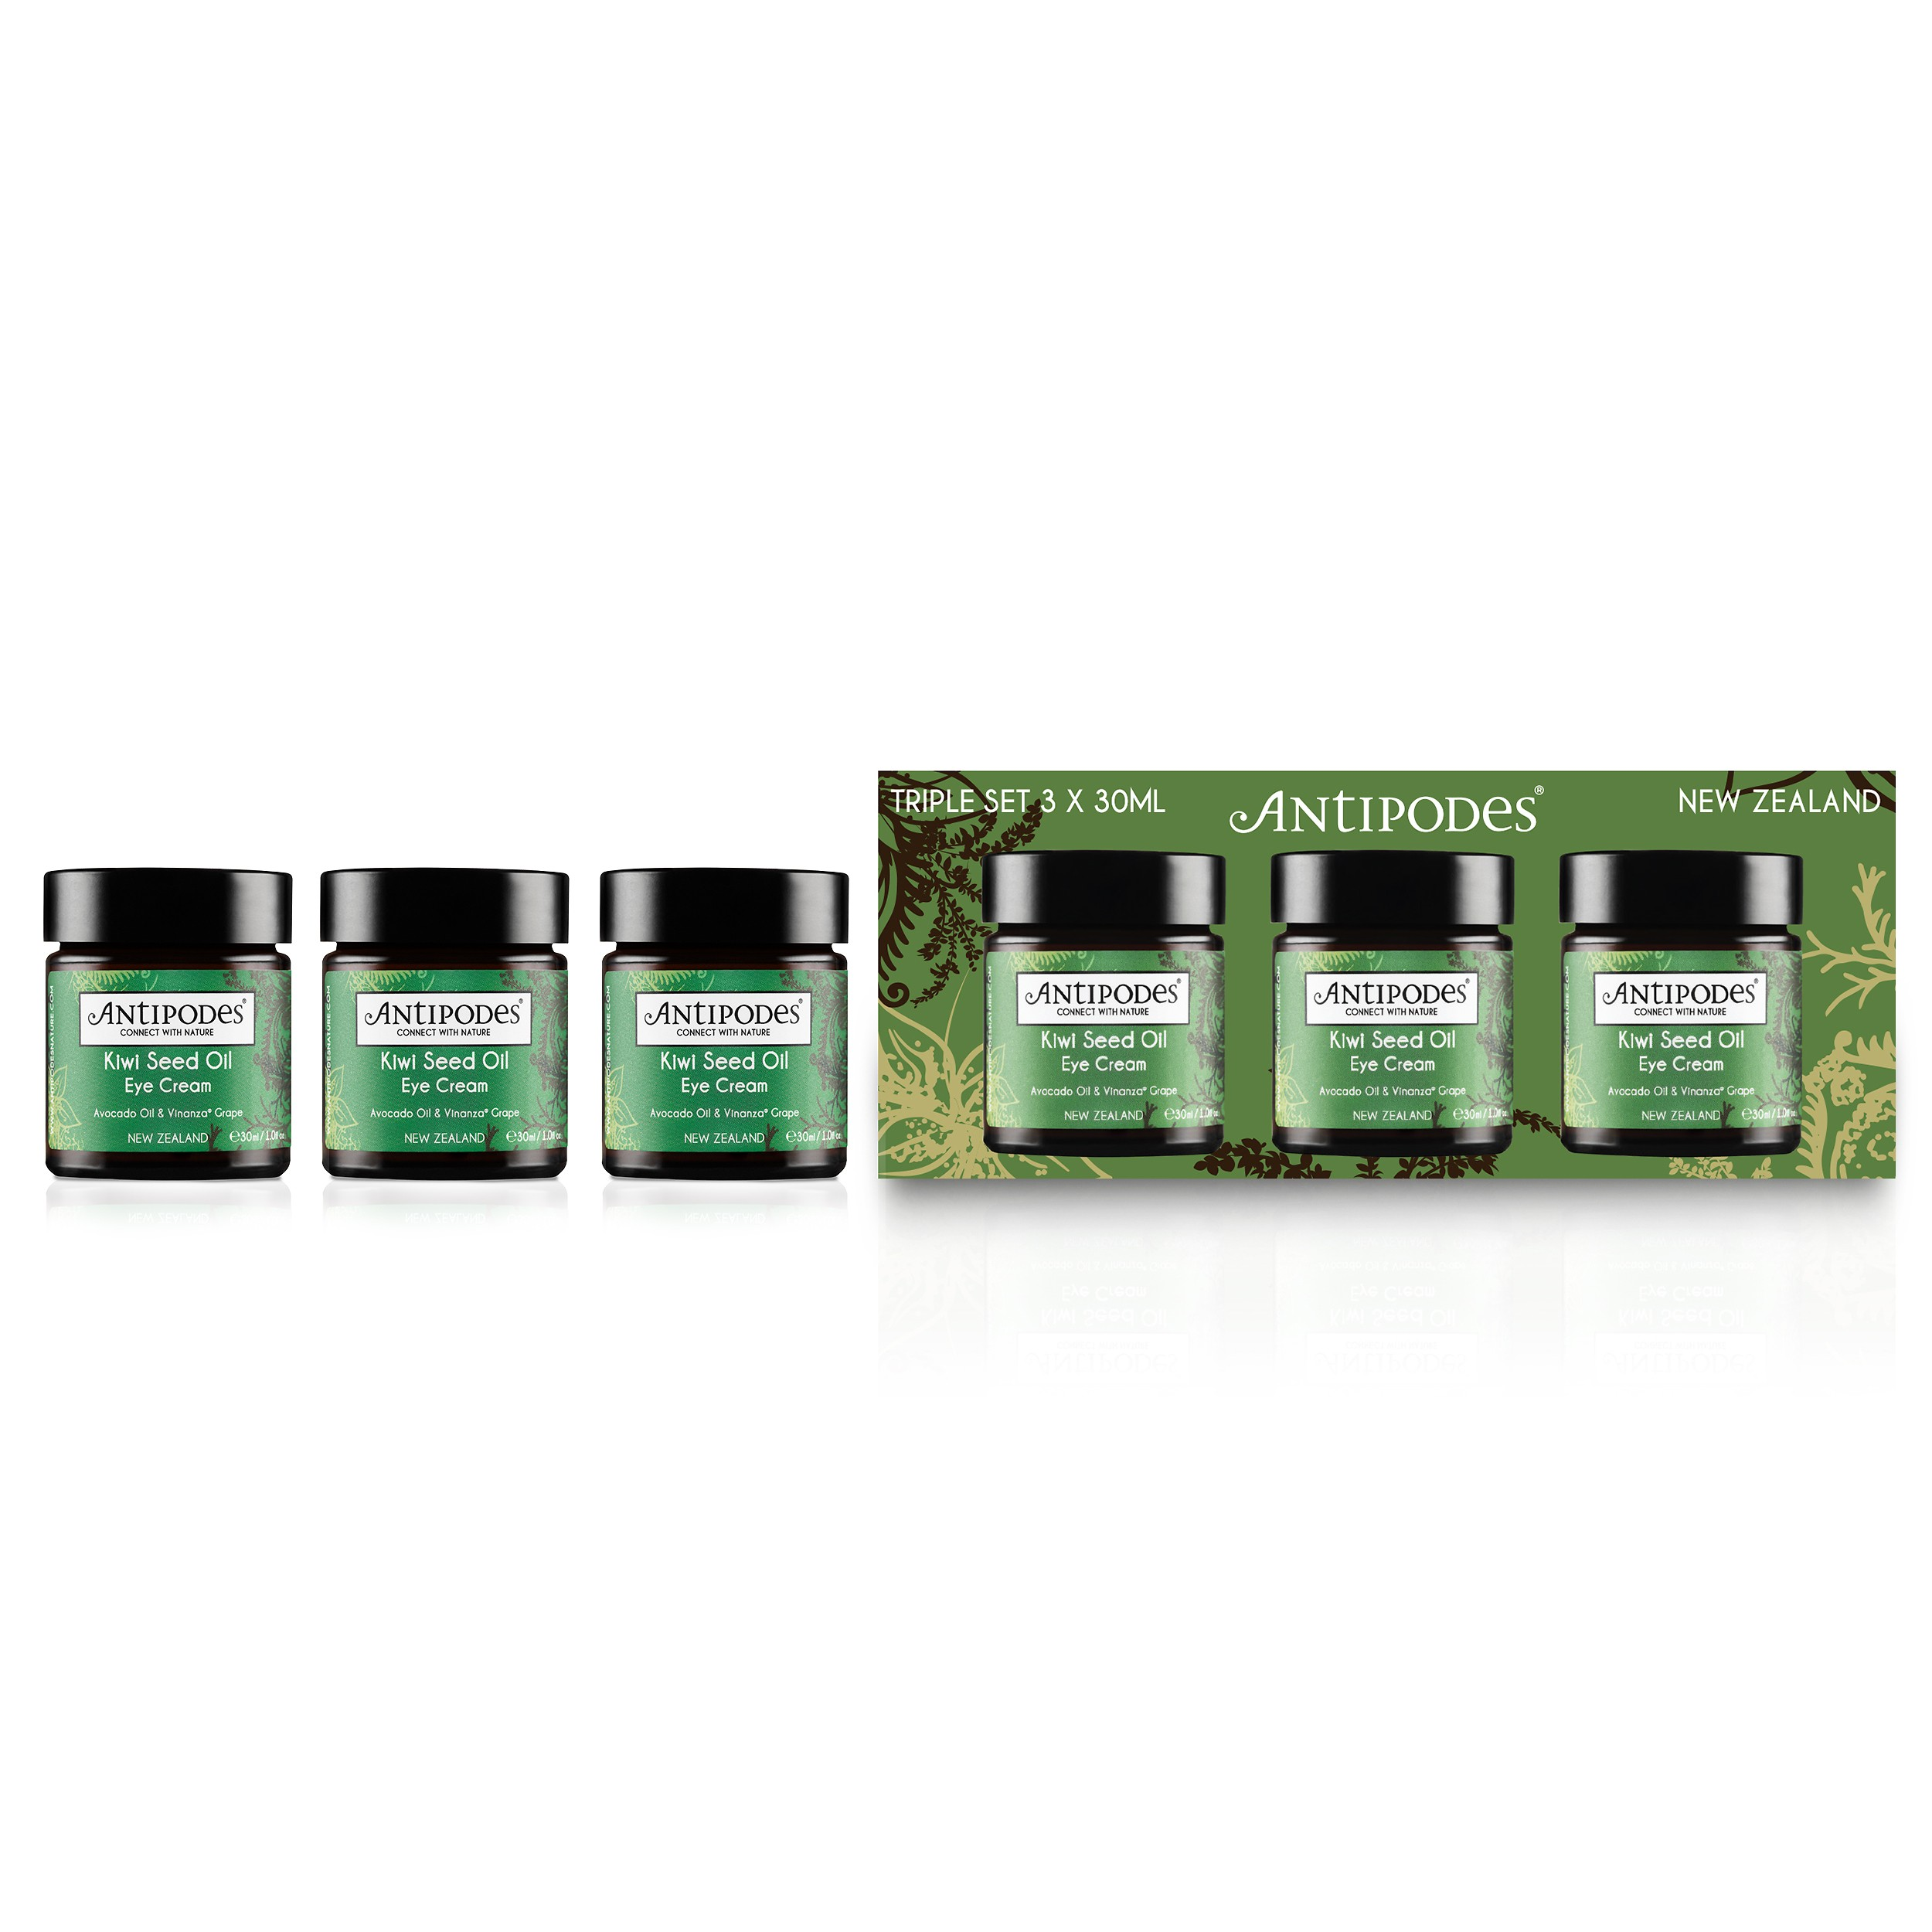 KIWI SEED OIL EYE CREAM TRIPLE PACK